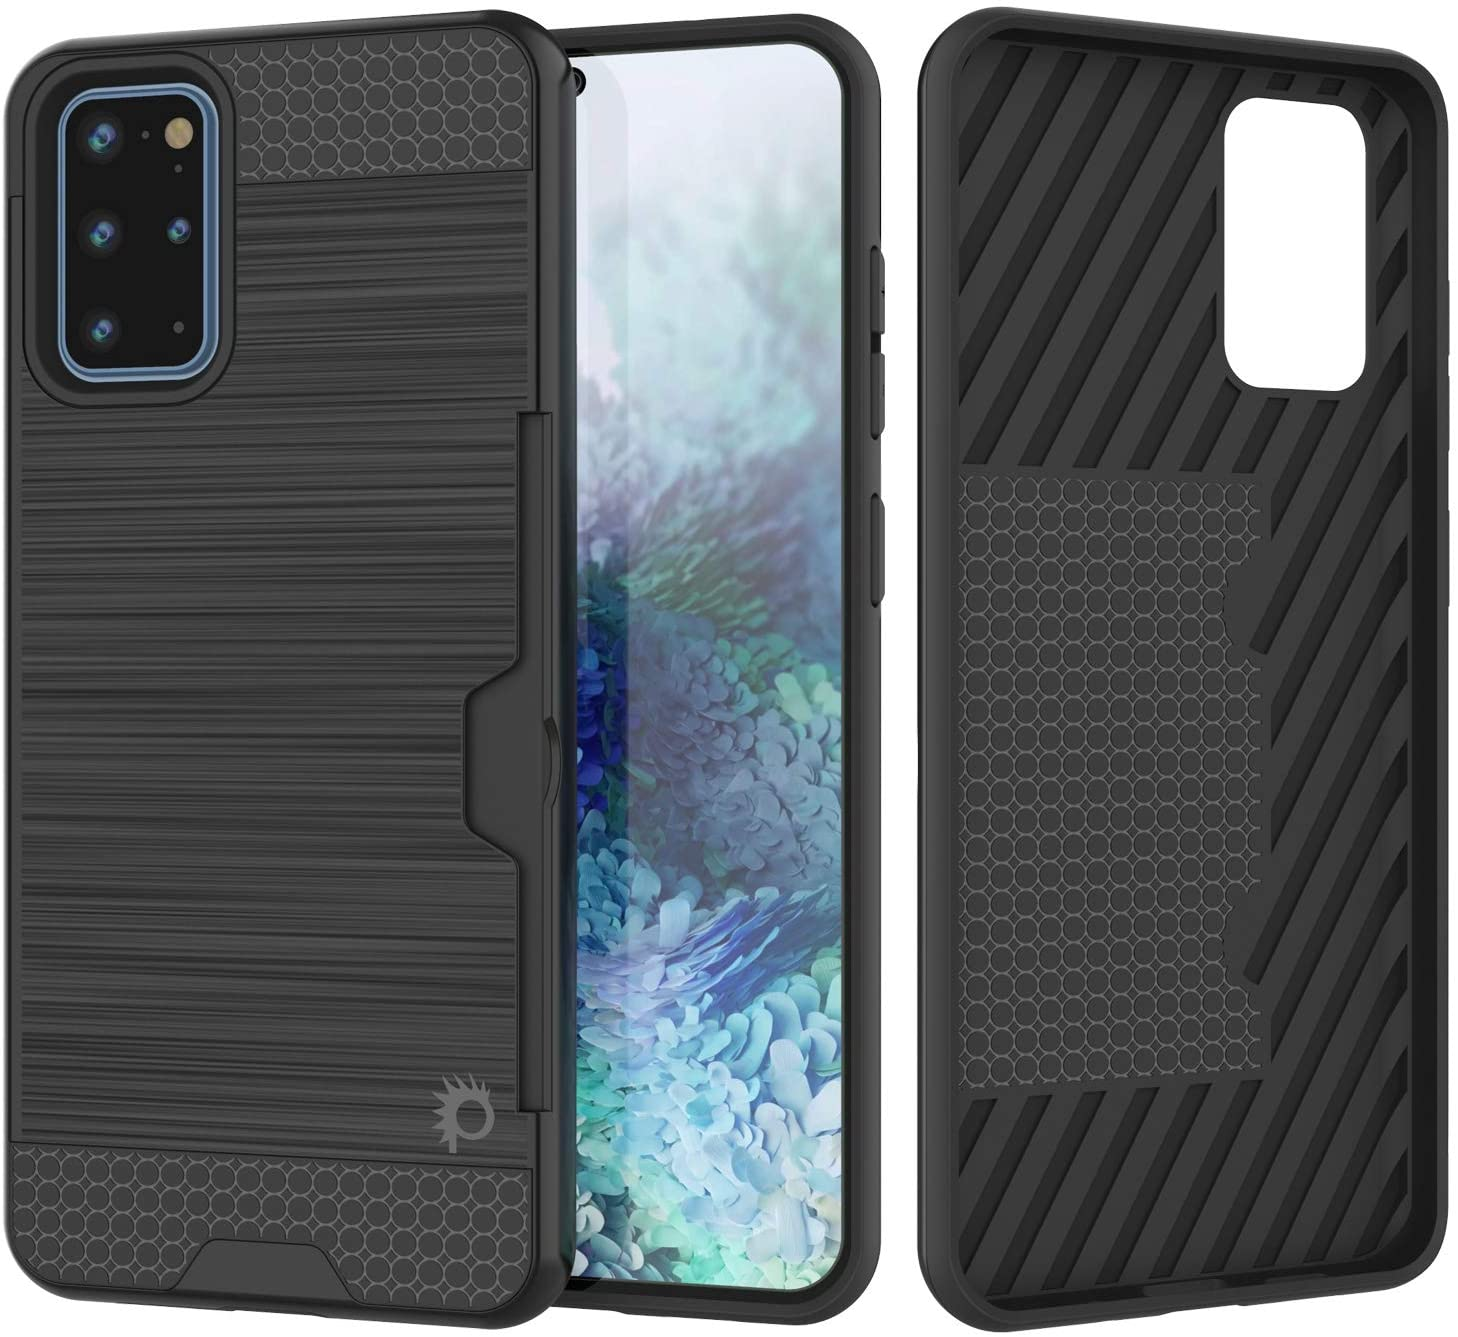 Galaxy S20+ Plus  Case, PUNKcase [SLOT Series] [Slim Fit] Dual-Layer Armor Cover w/Integrated Anti-Shock System, Credit Card Slot [Black]